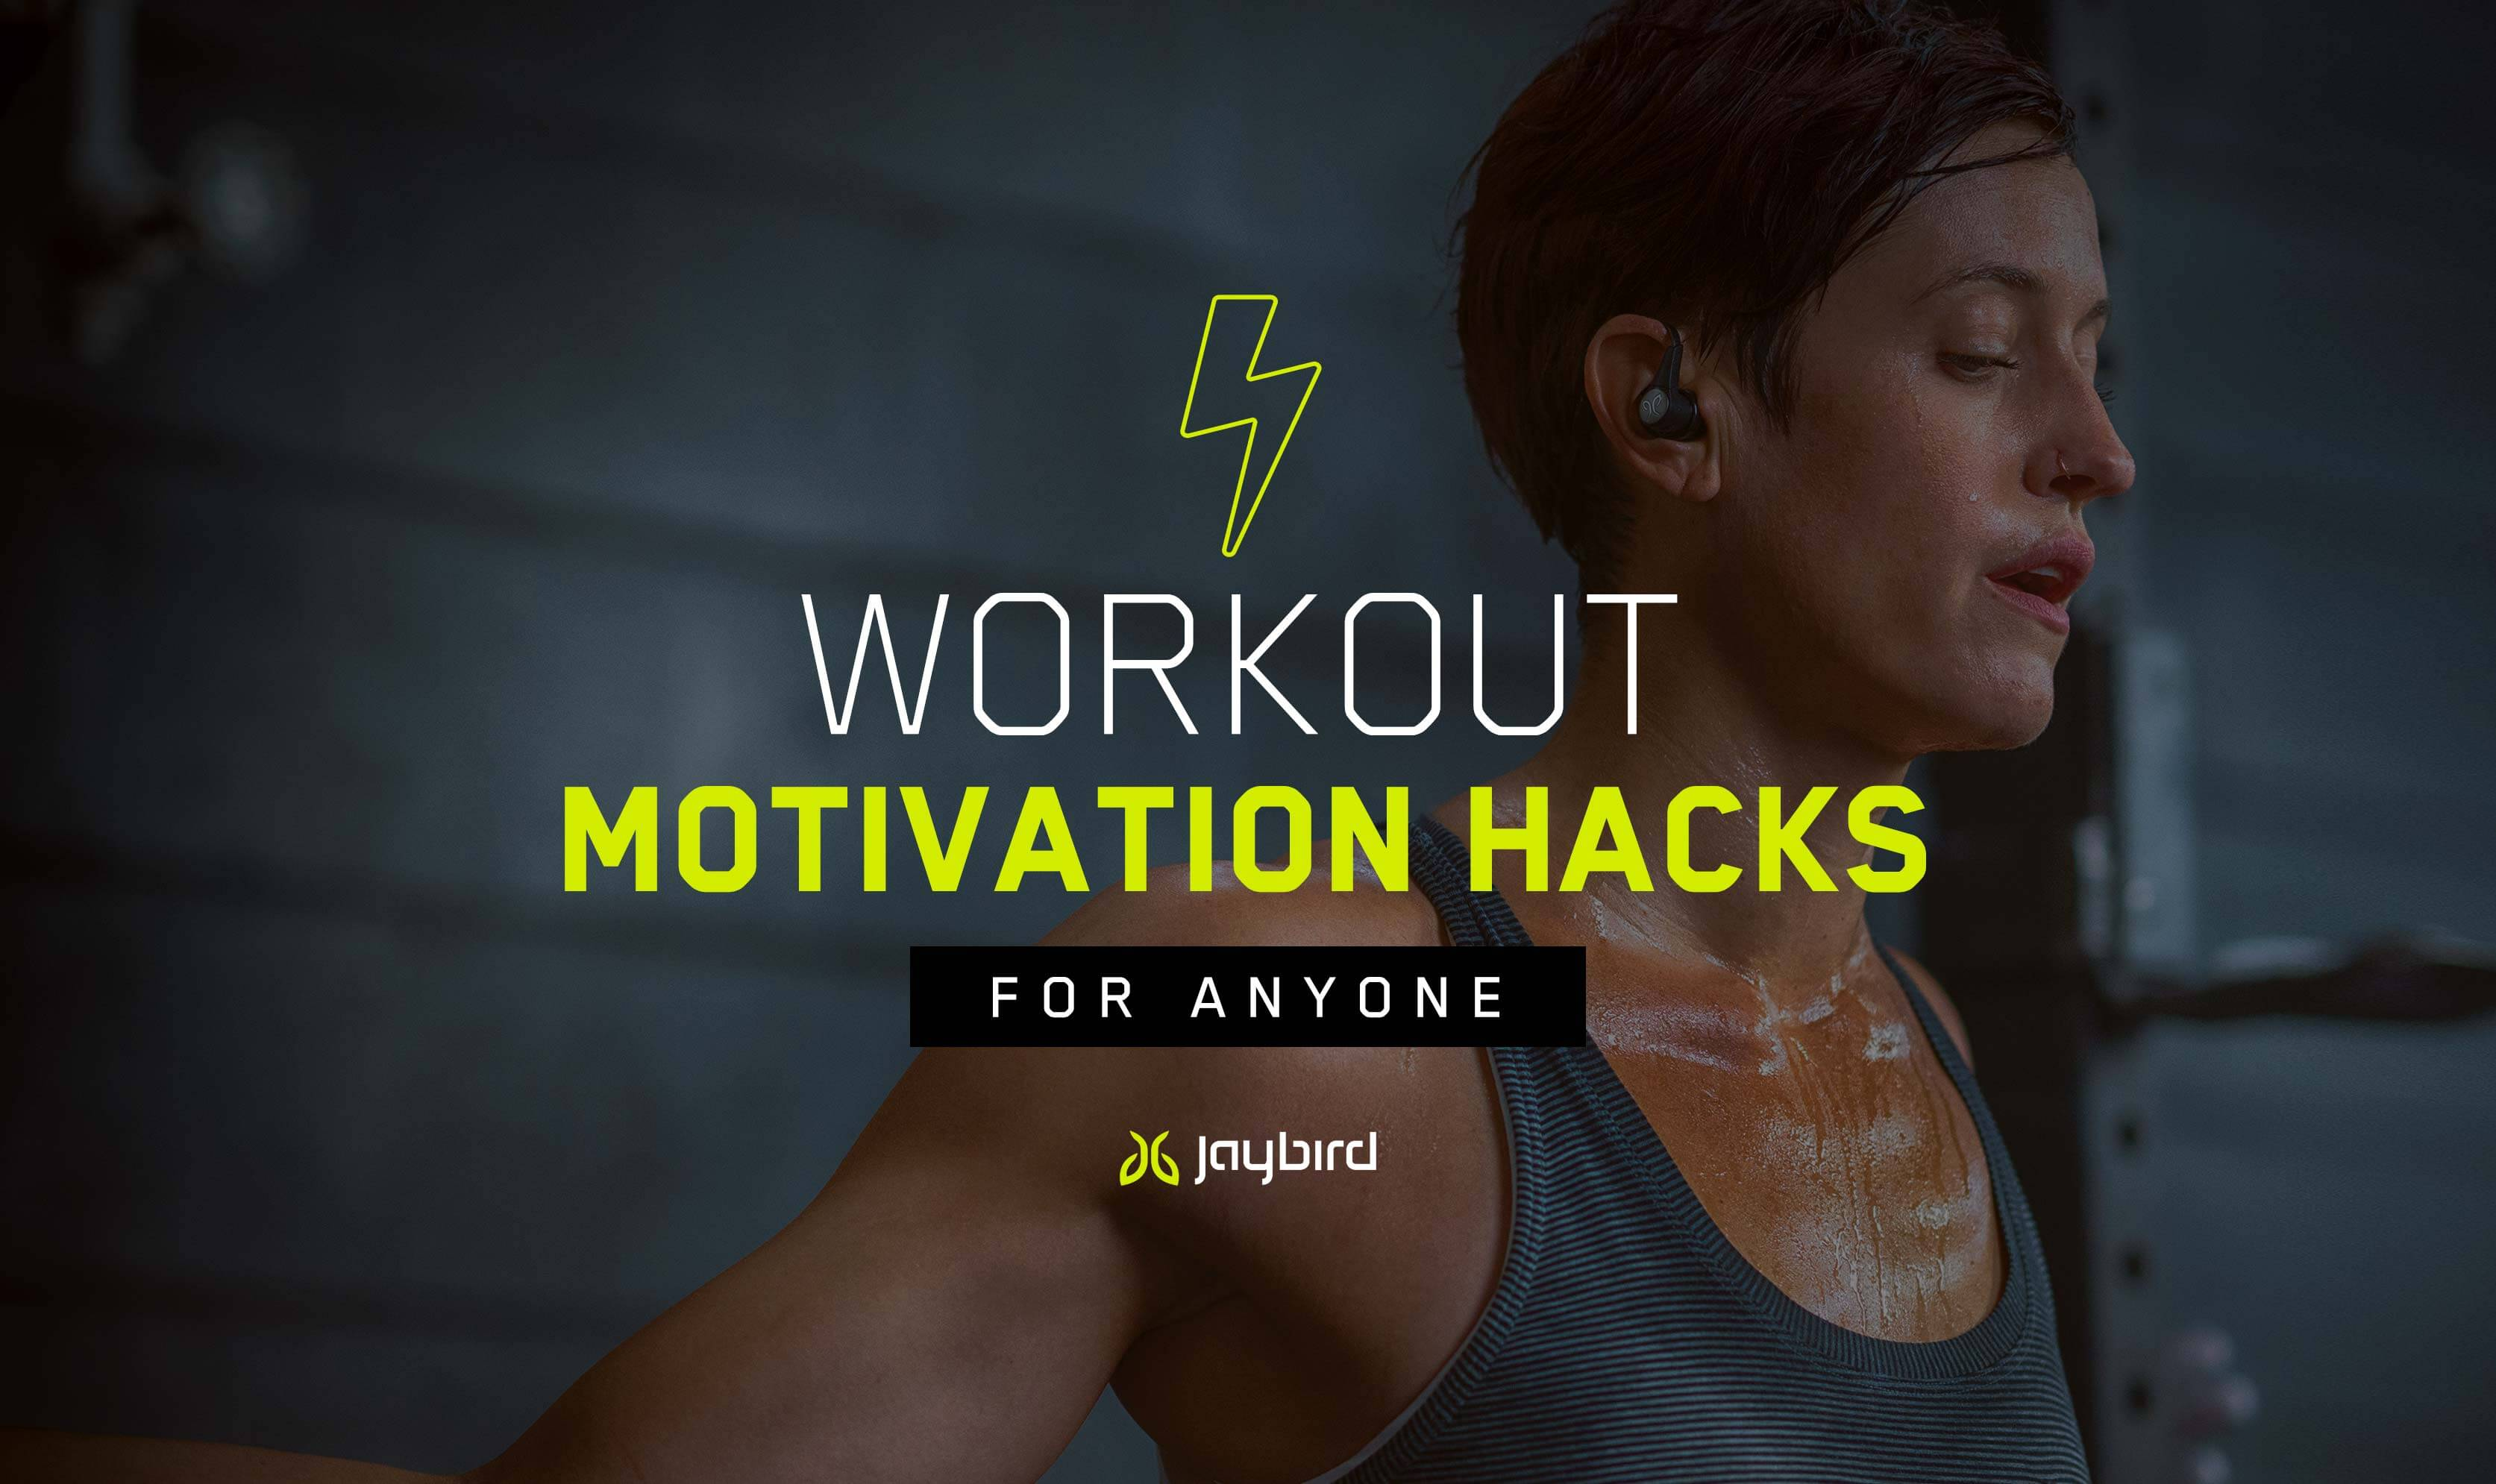 Workout Motivation Hacks for Anyone